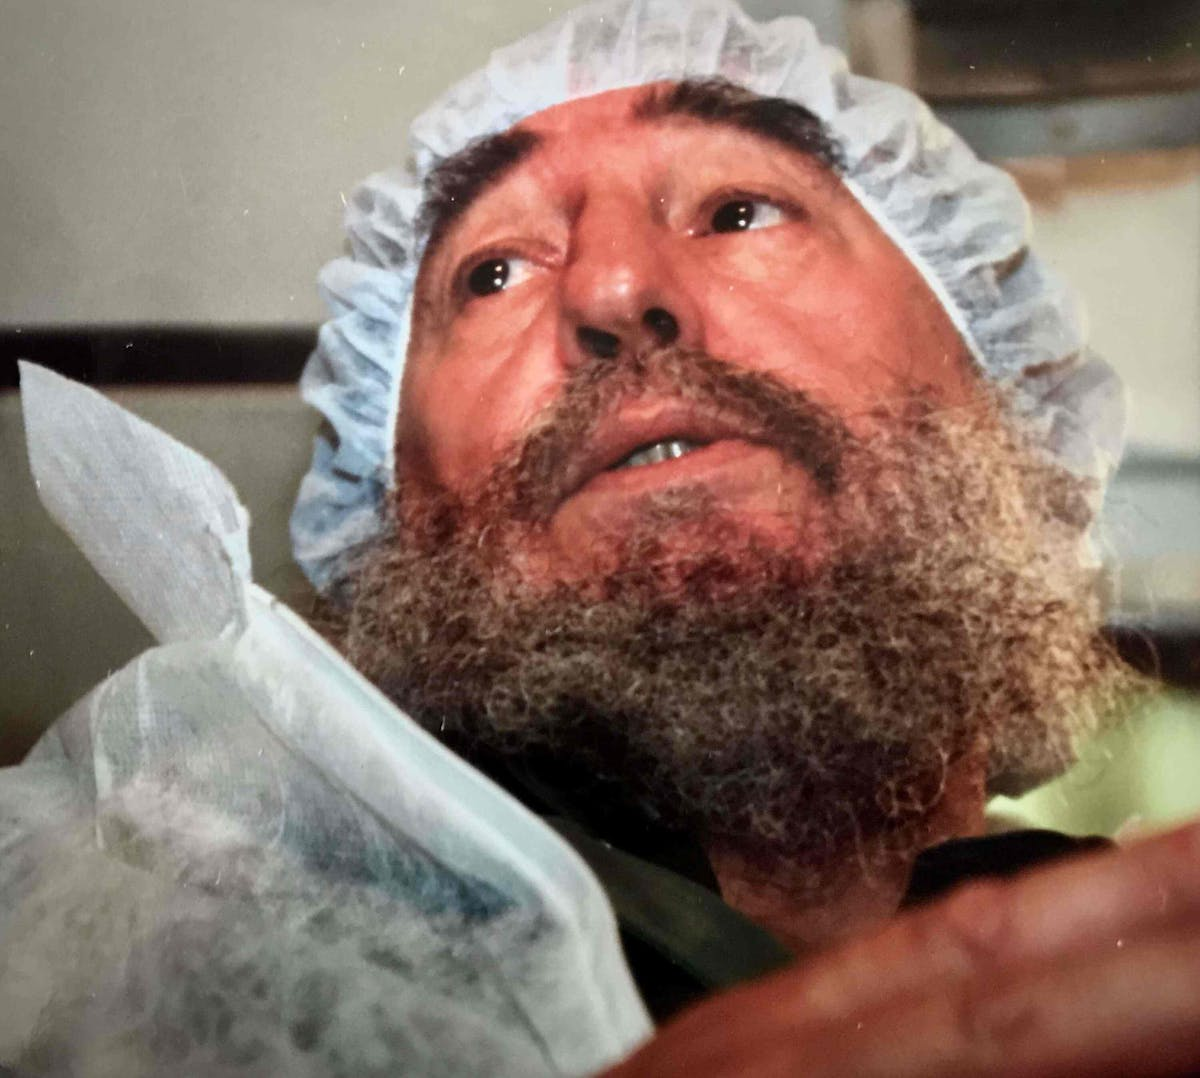 Fidel Castro In Scrubs On The Orbis Flying Eye Hospital in Havana, Cuba